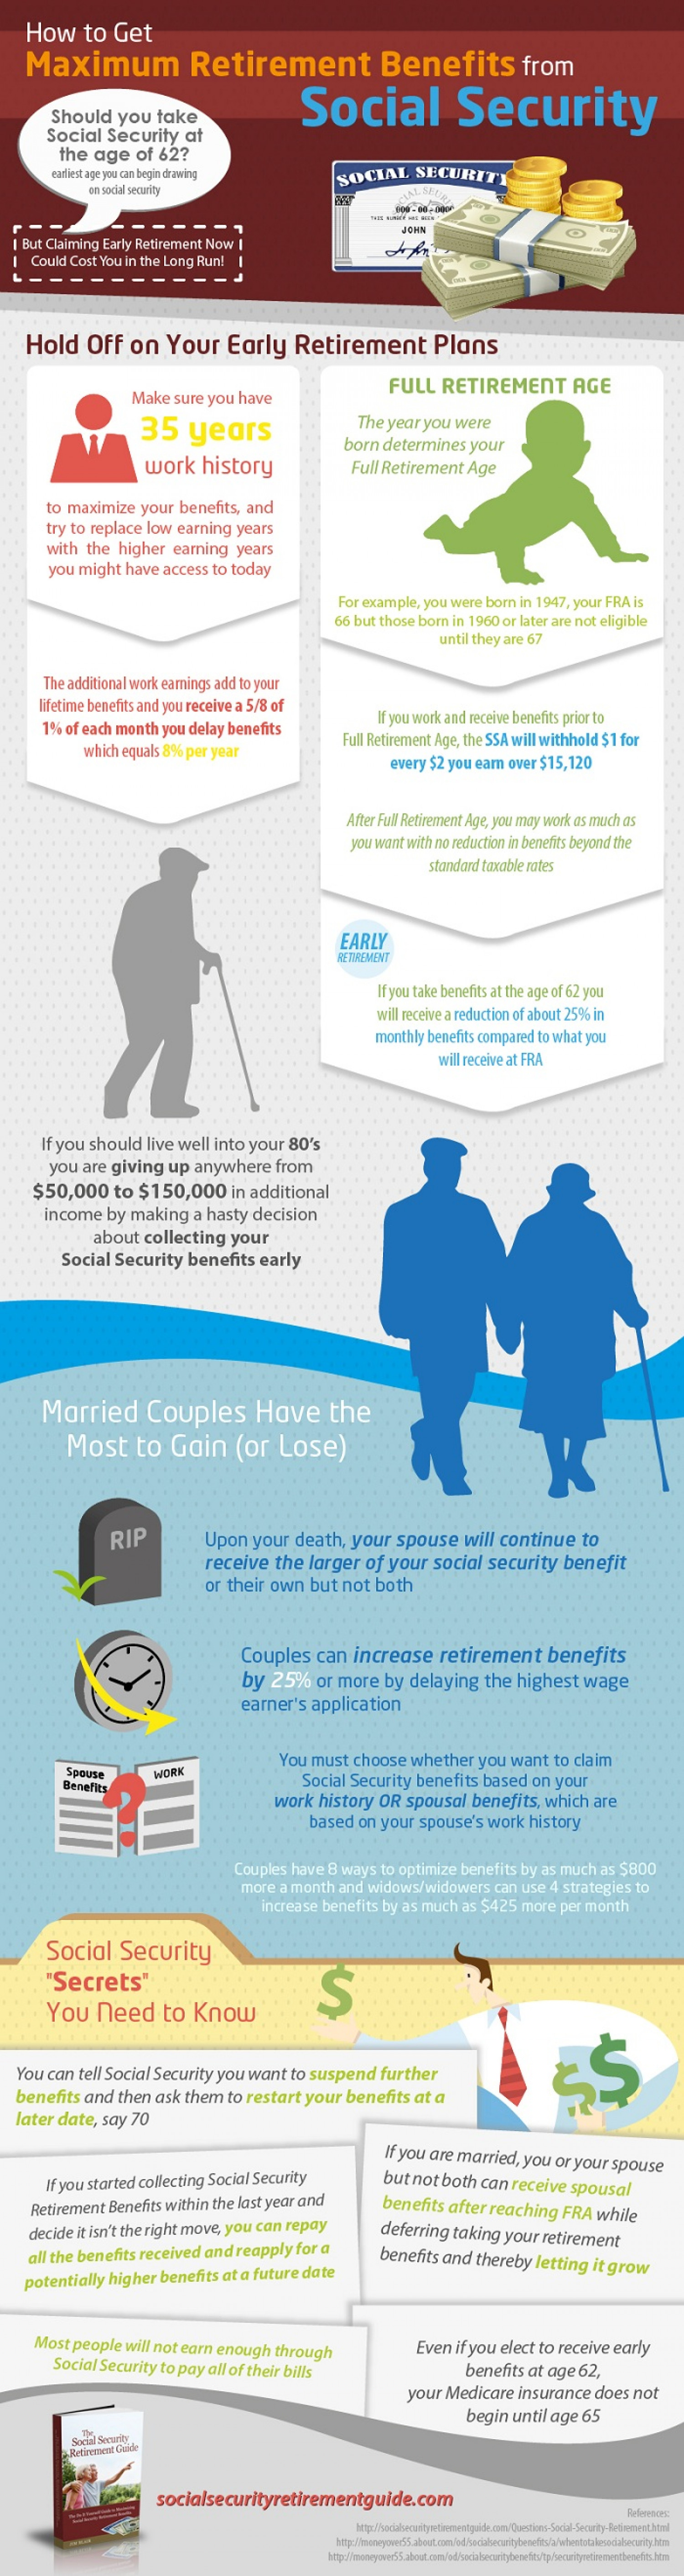 How To Get Maximum Retirement Benefits From Social